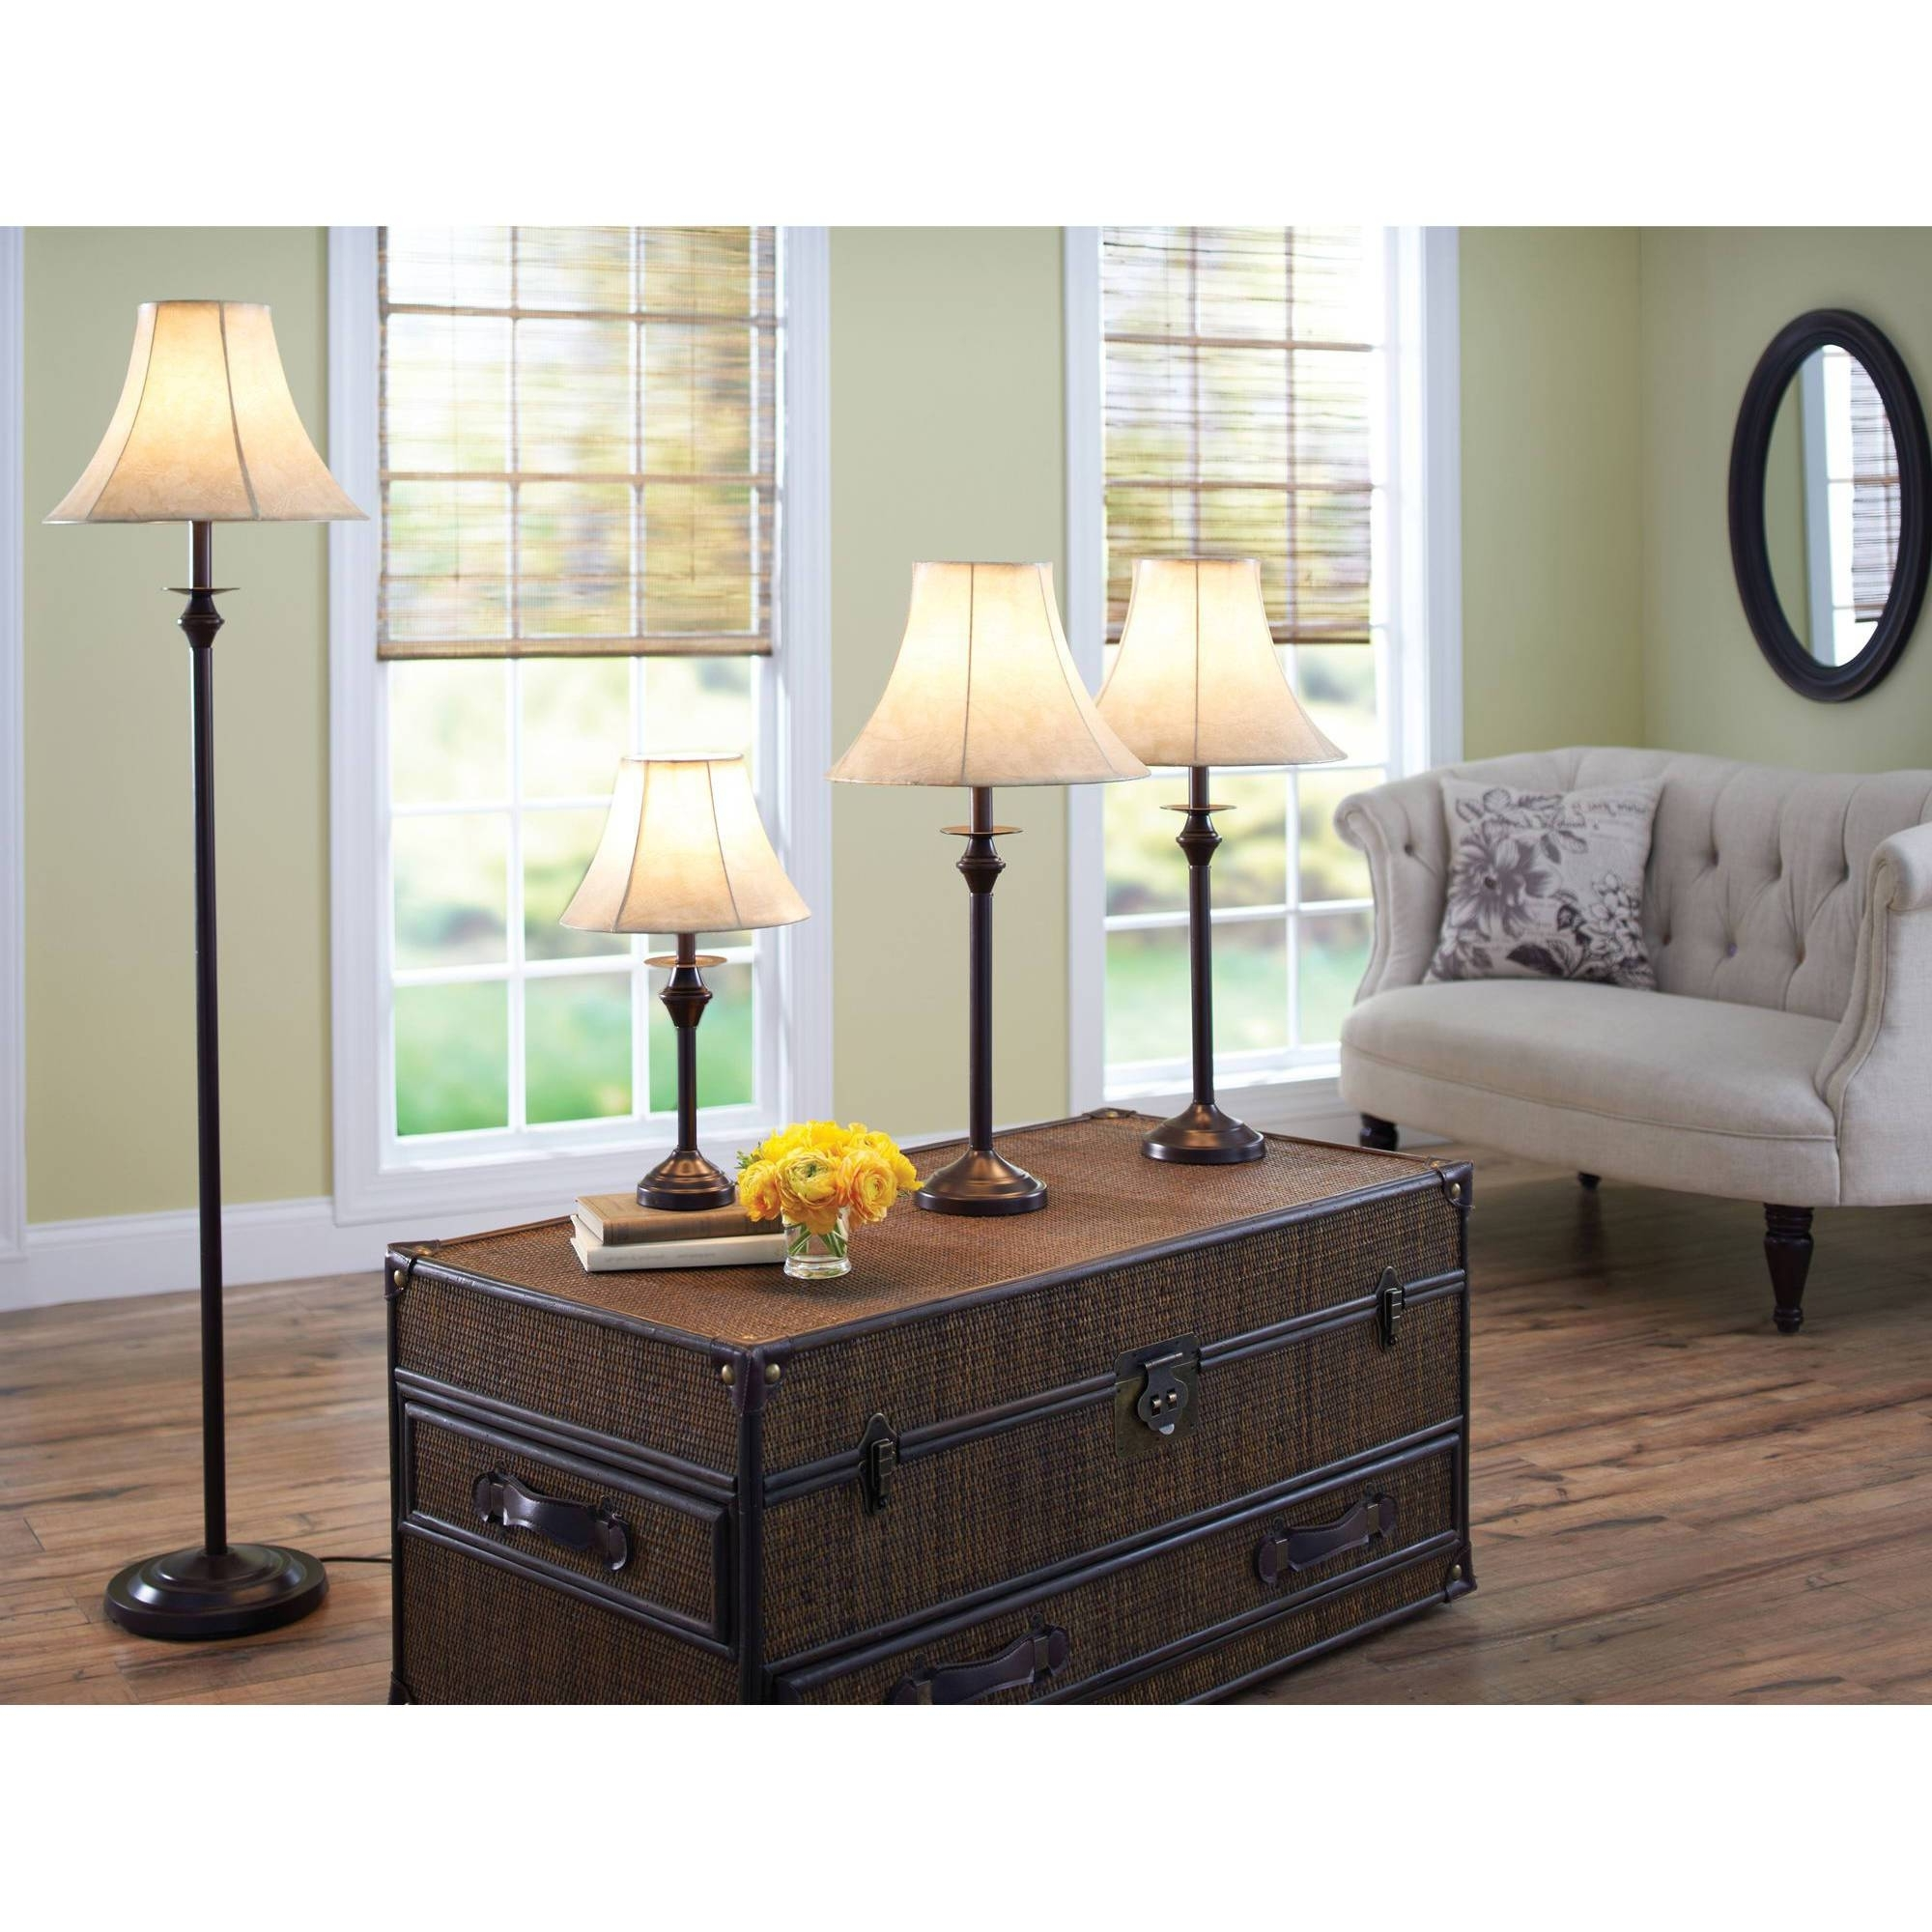 Favorite Bronze Table Lamps For Living Room Home Design Plan, Bronze Table Pertaining To Bronze Living Room Table Lamps (View 9 of 20)